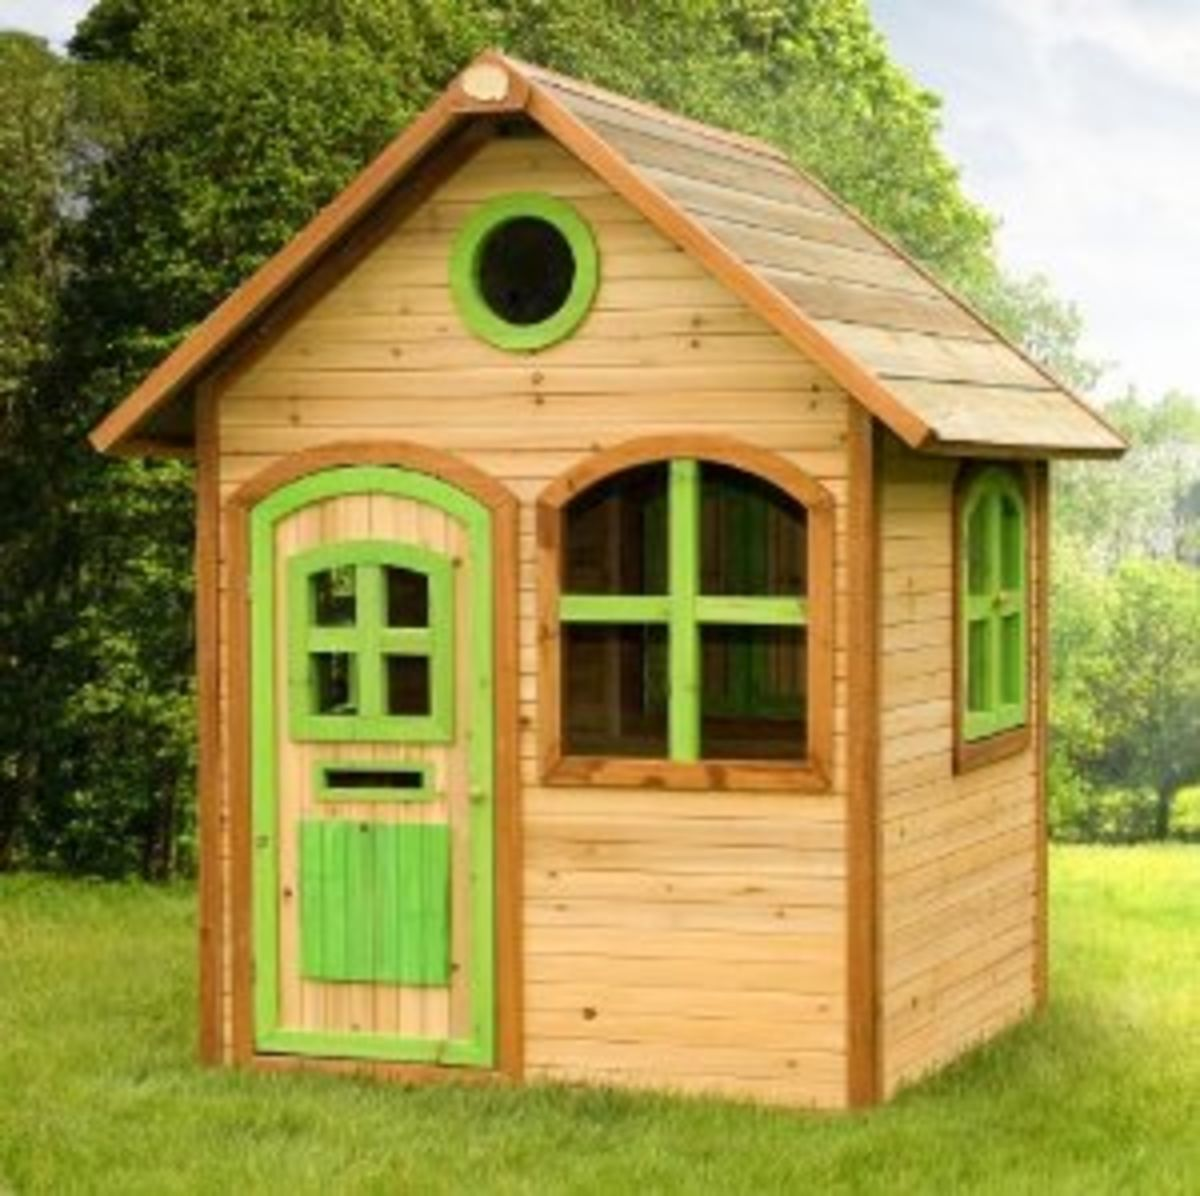 Headline for Best-Rated Children's Wooden Outdoor Playhouses For Sale - Reviews And Ratings